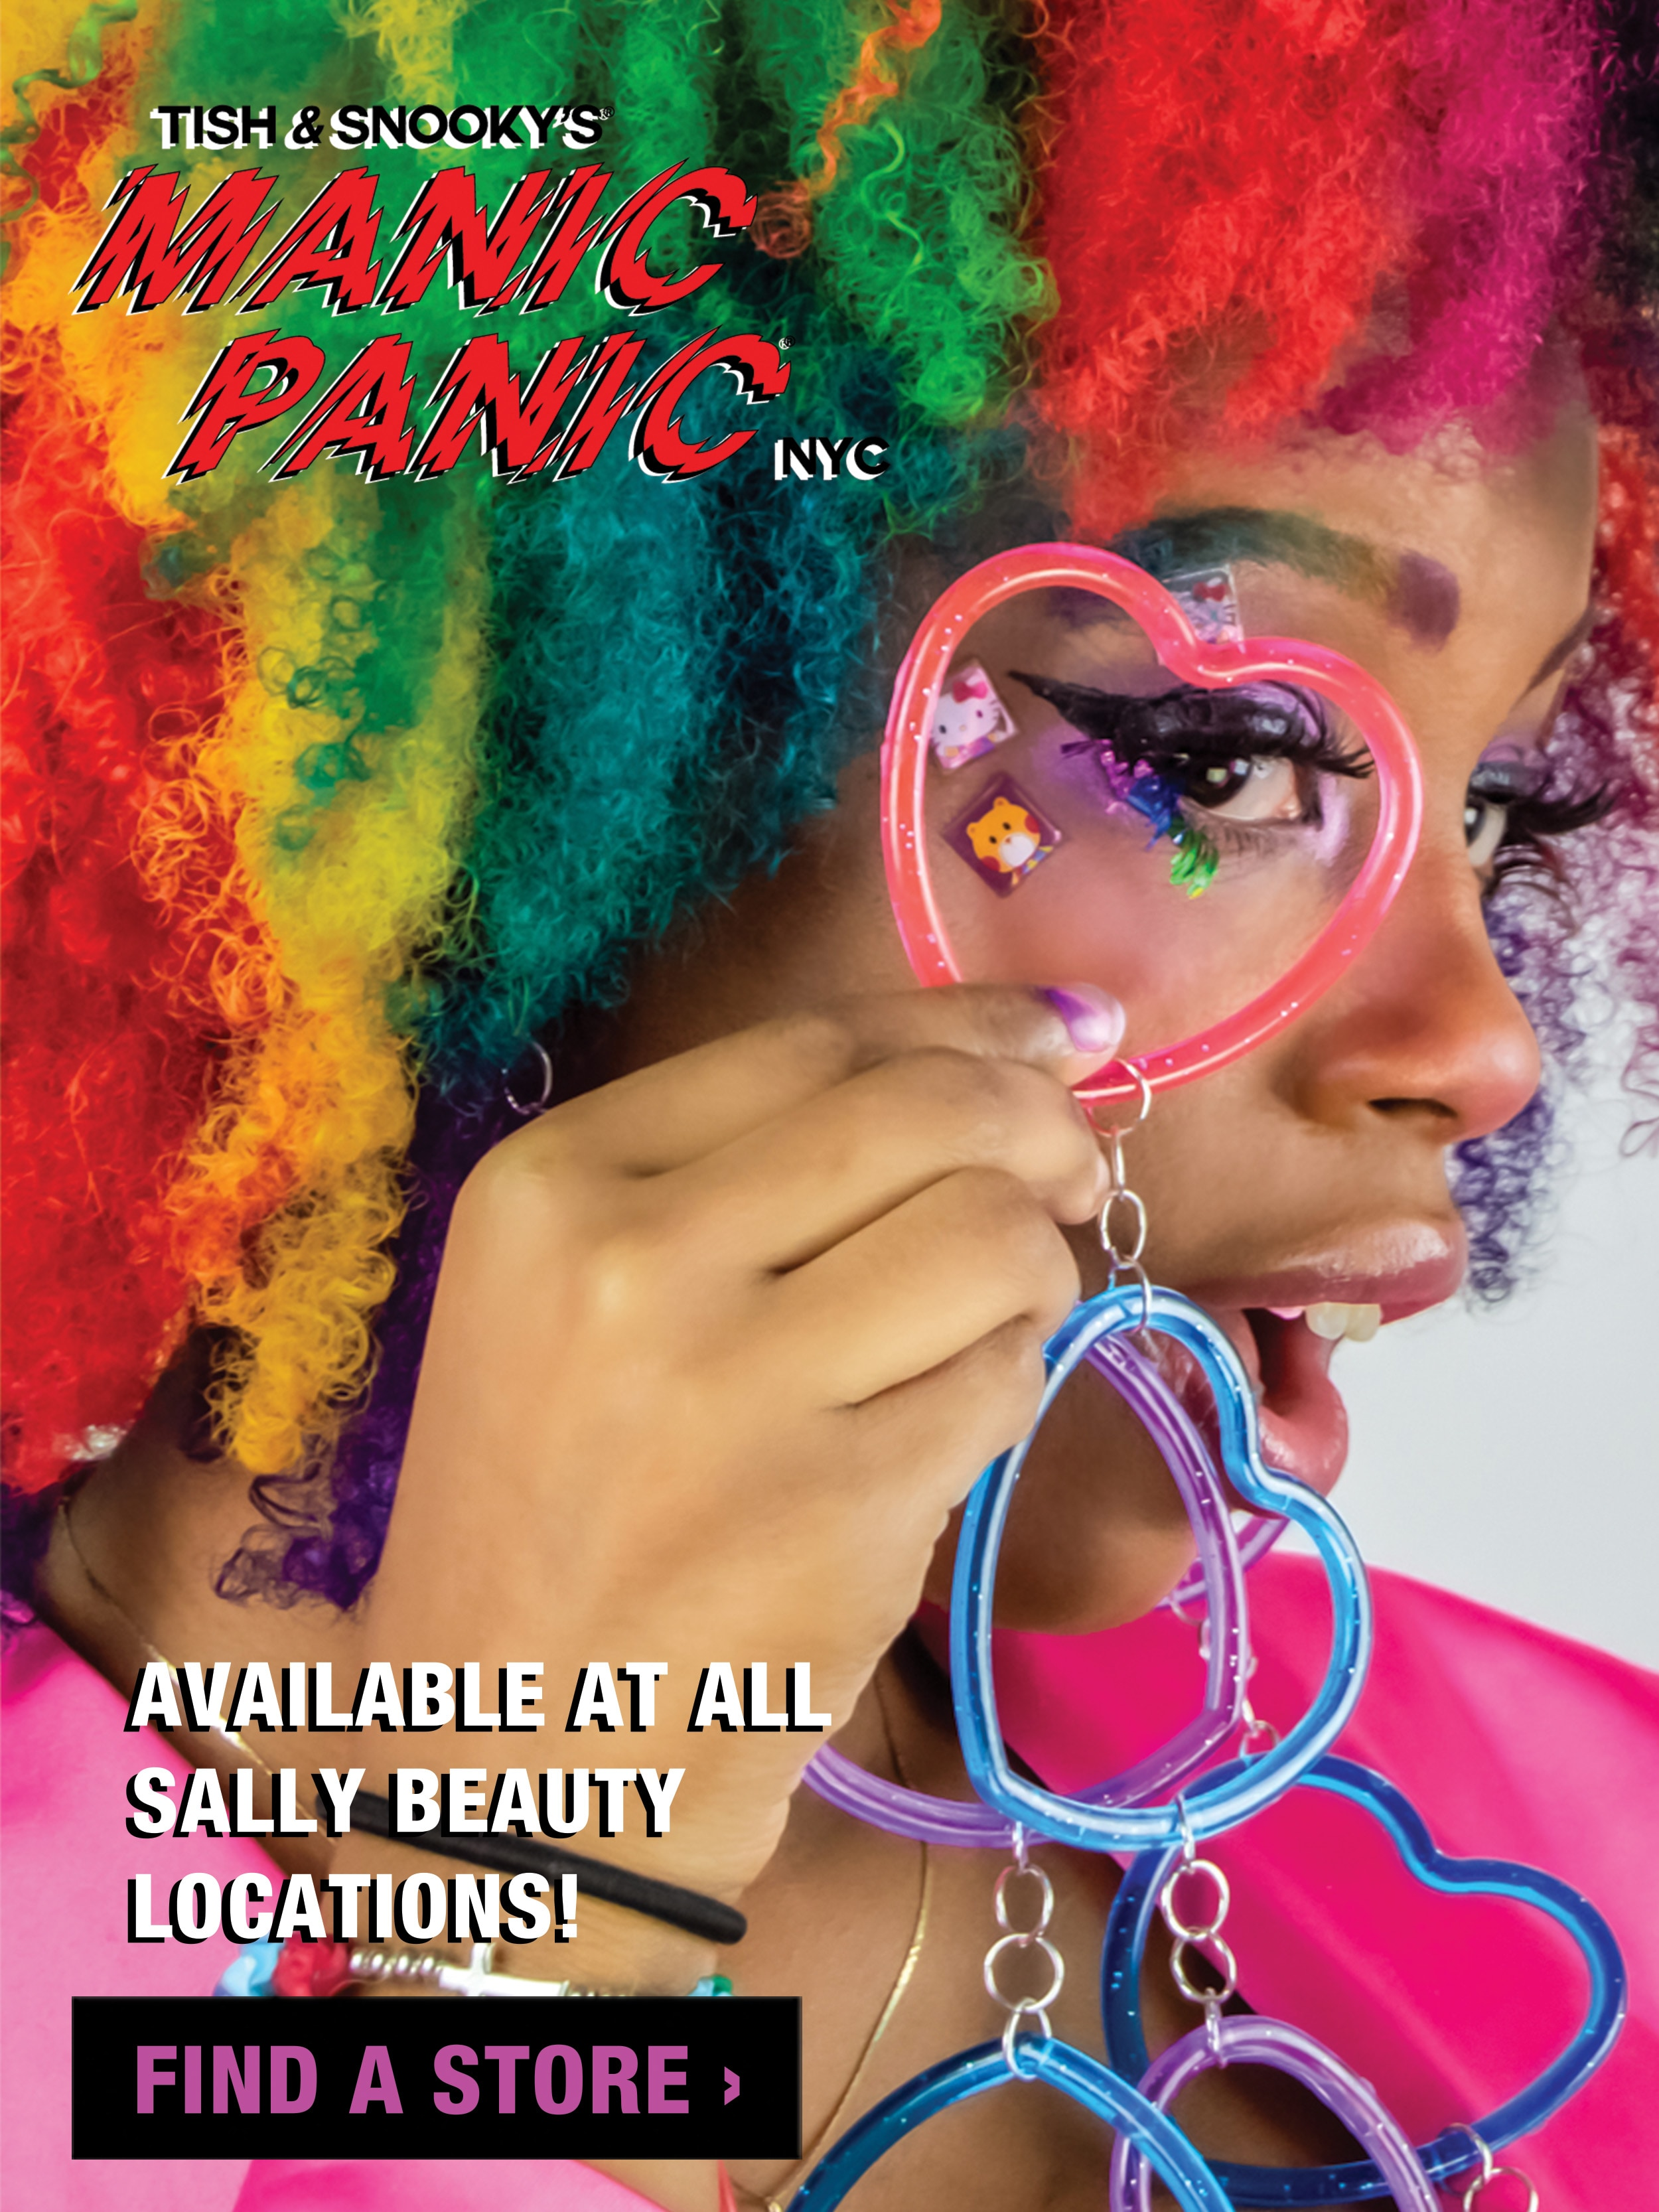 Now available at all Sally Beauty locations. Find a store.